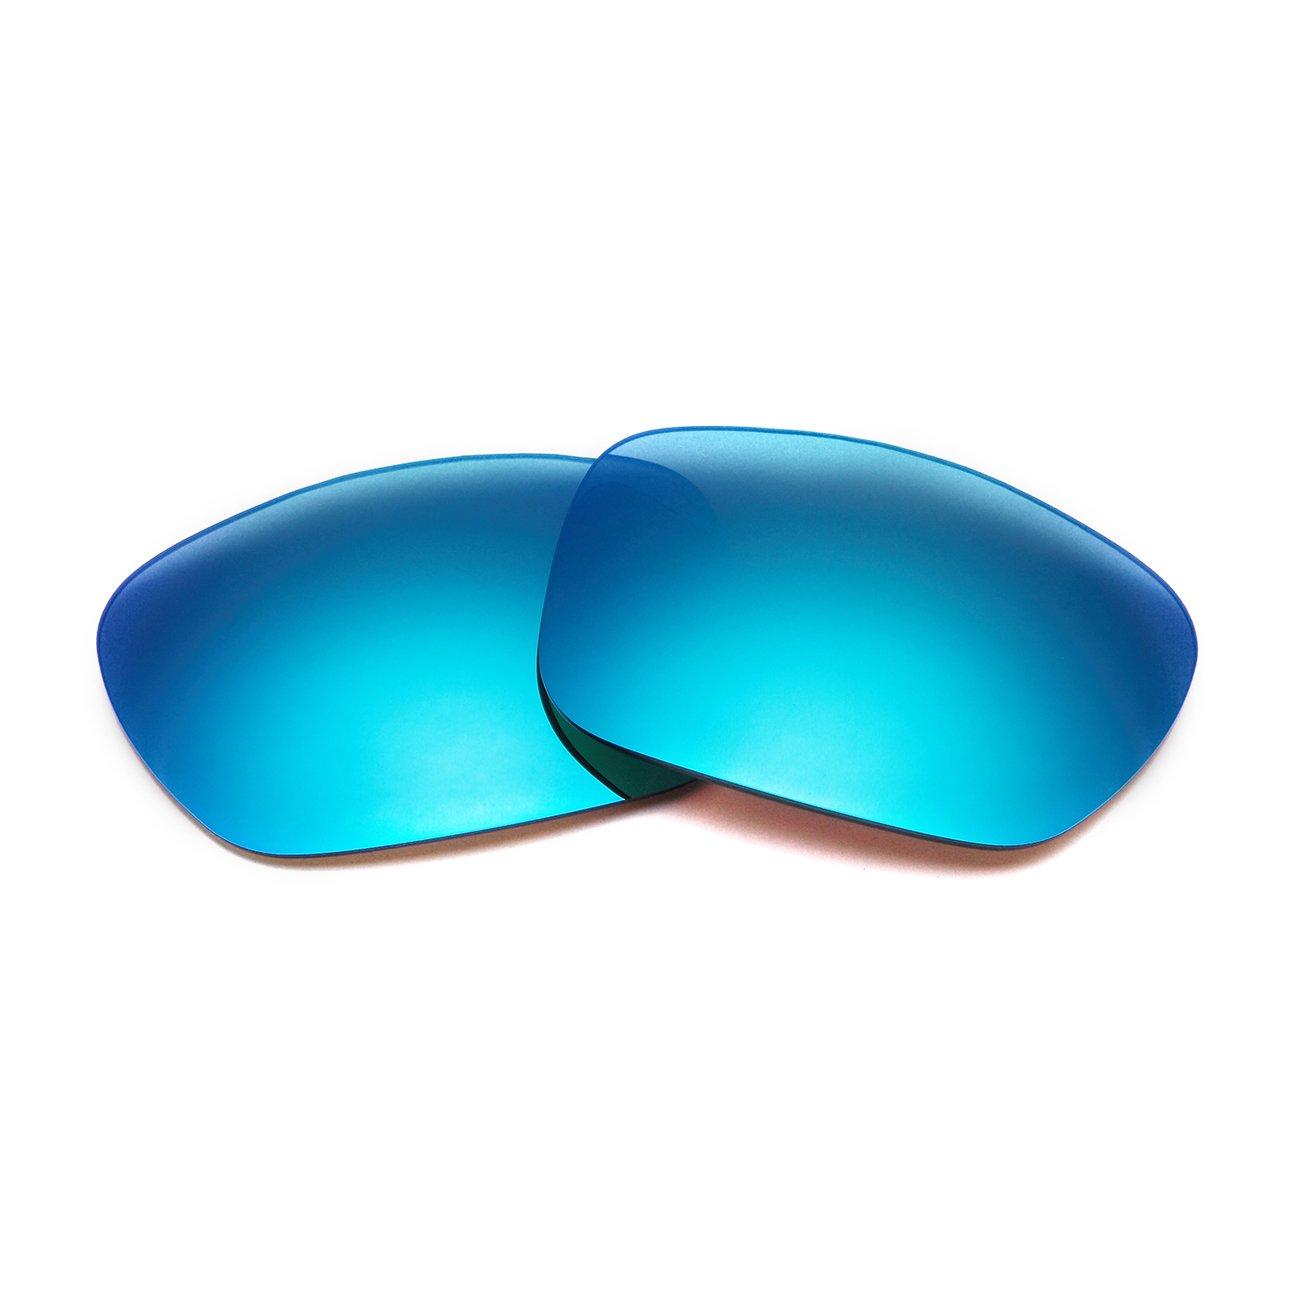 c653f2d2b5 Polarized Replacement Sunglasses Lenses for Oakley Twoface UV Protection  Blue 06